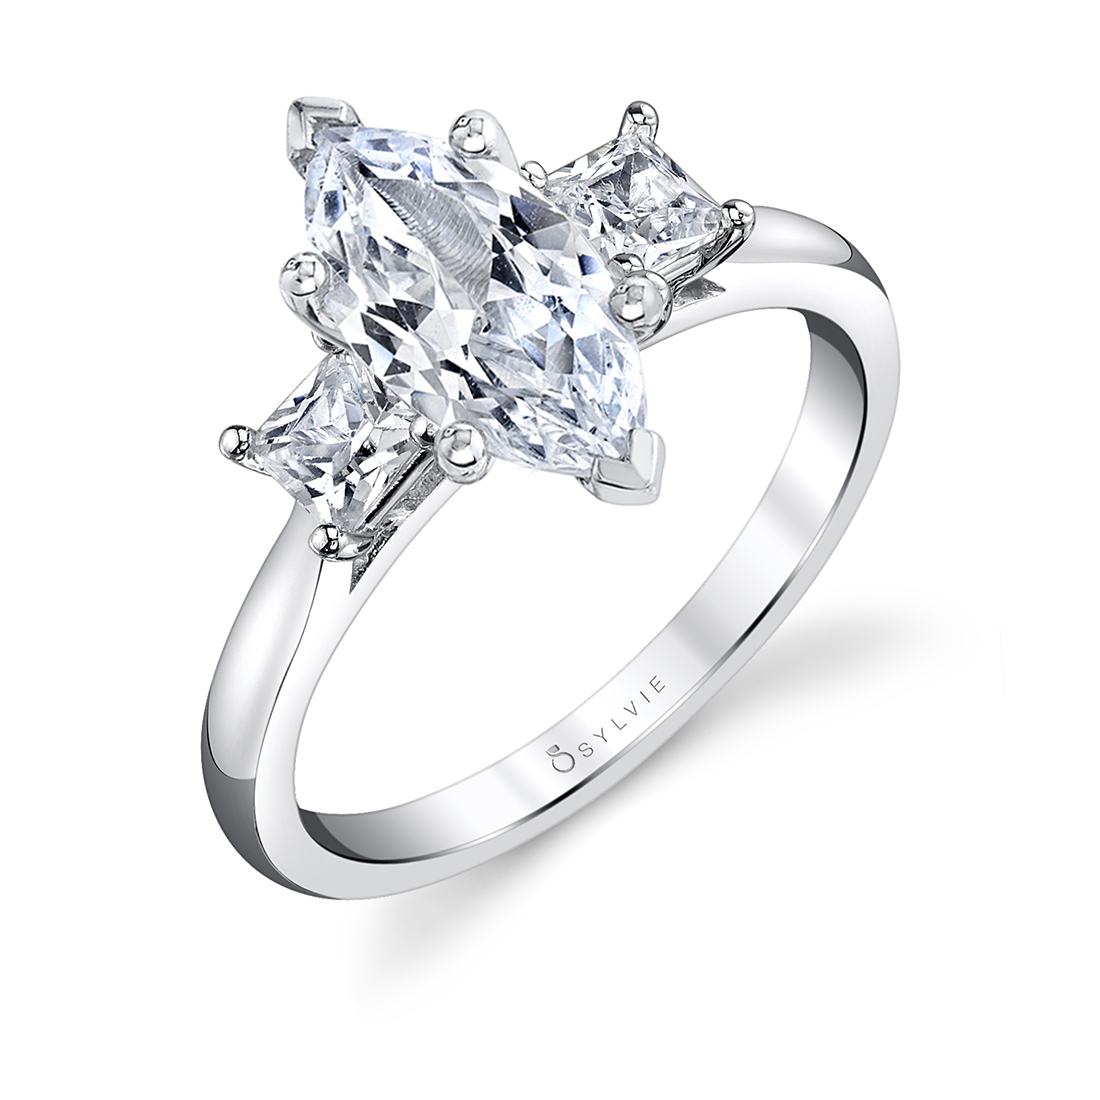 classic marquise engagement ring with 3 stones in white gold